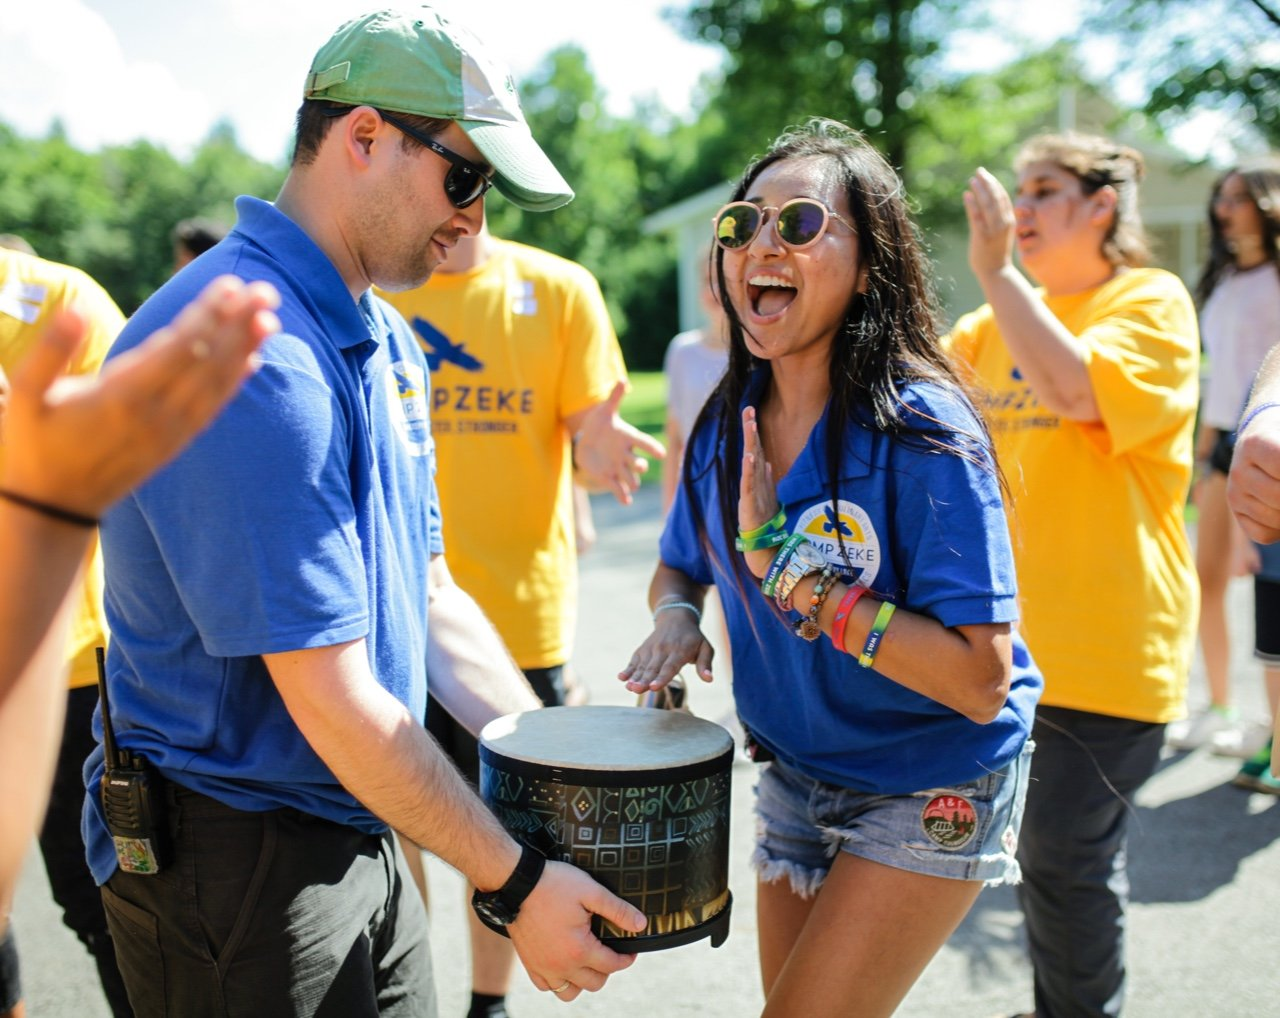 Camp staff playing drums and singing outside